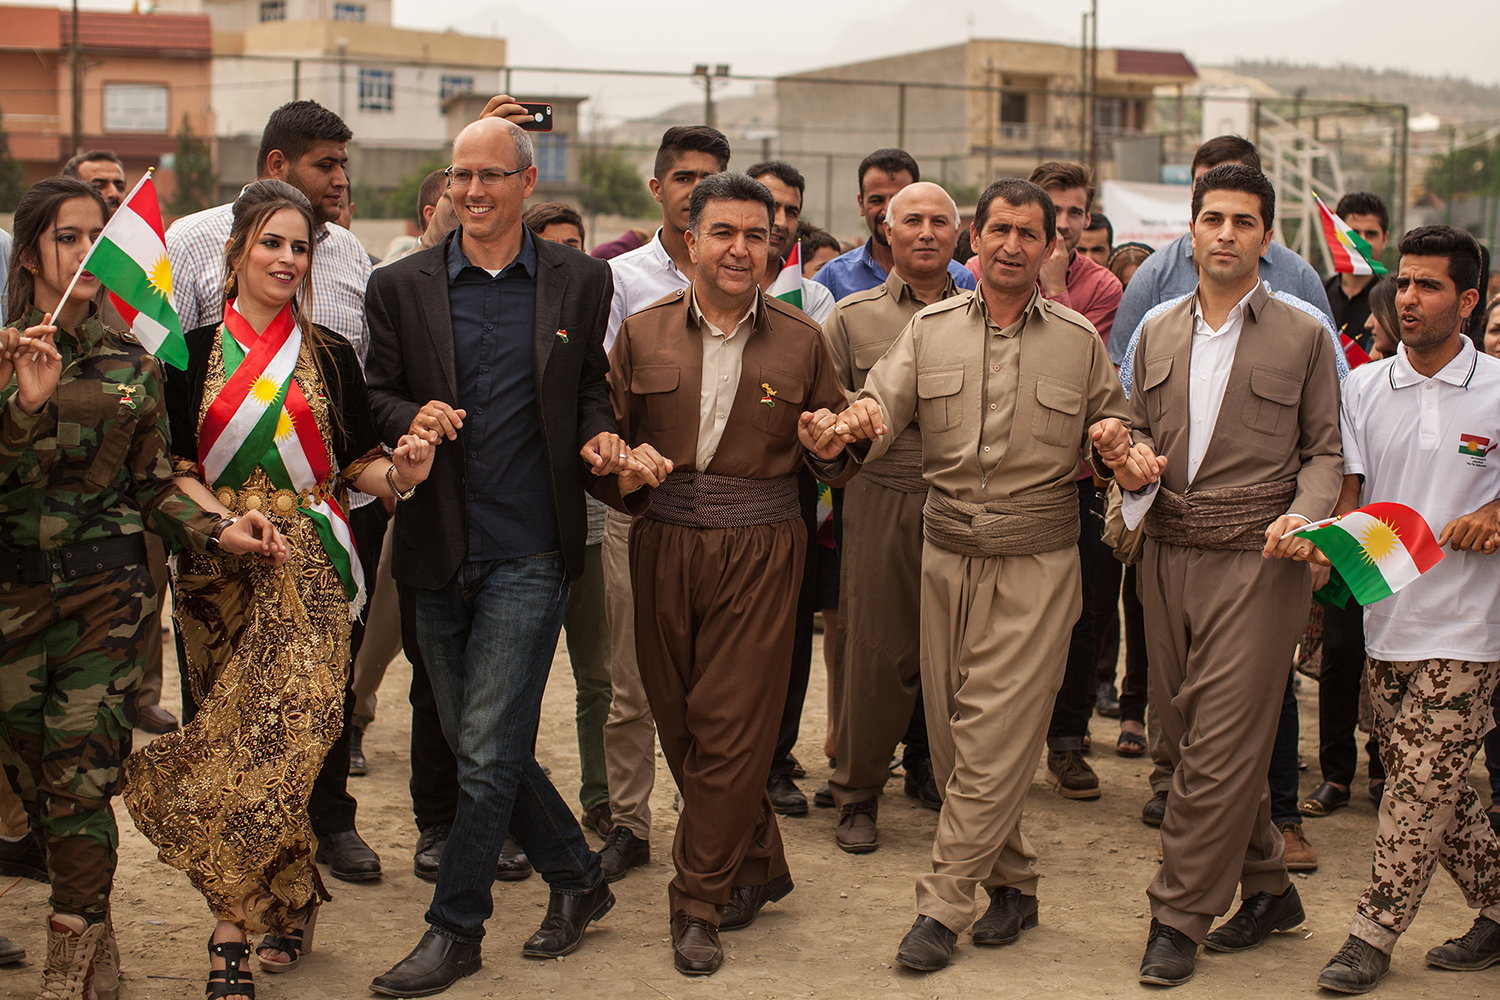 Country Director, Billy Ray, dances next to Mayor Kak Krmanj of Soran celebrating Kurdistan.